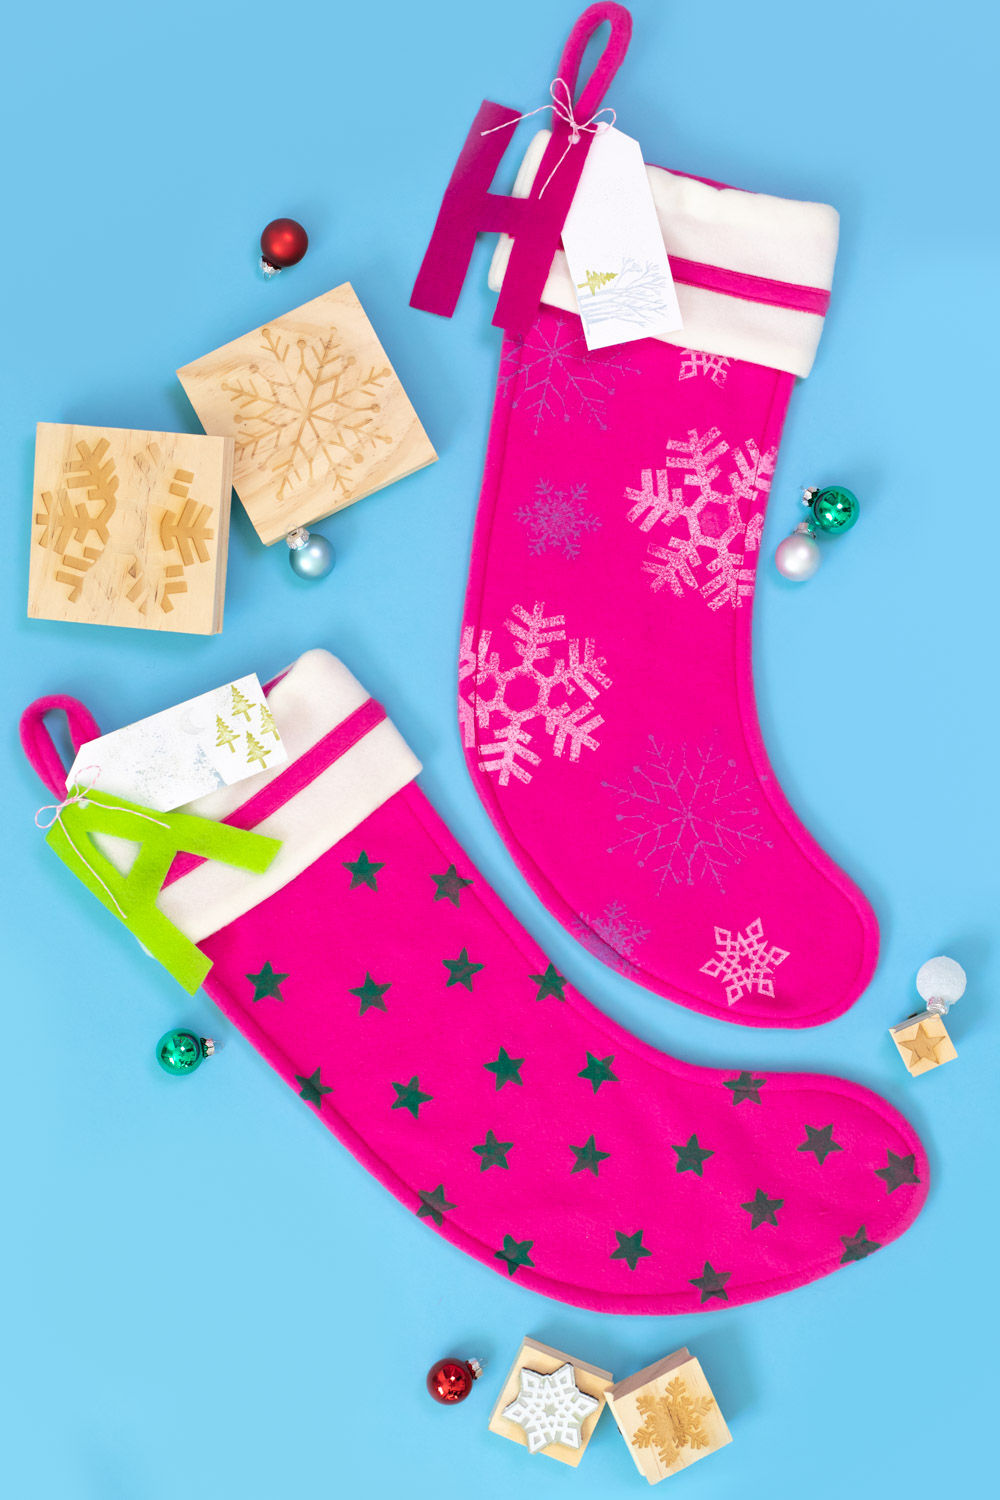 two stamped stockings lay flat with ornaments and stamps